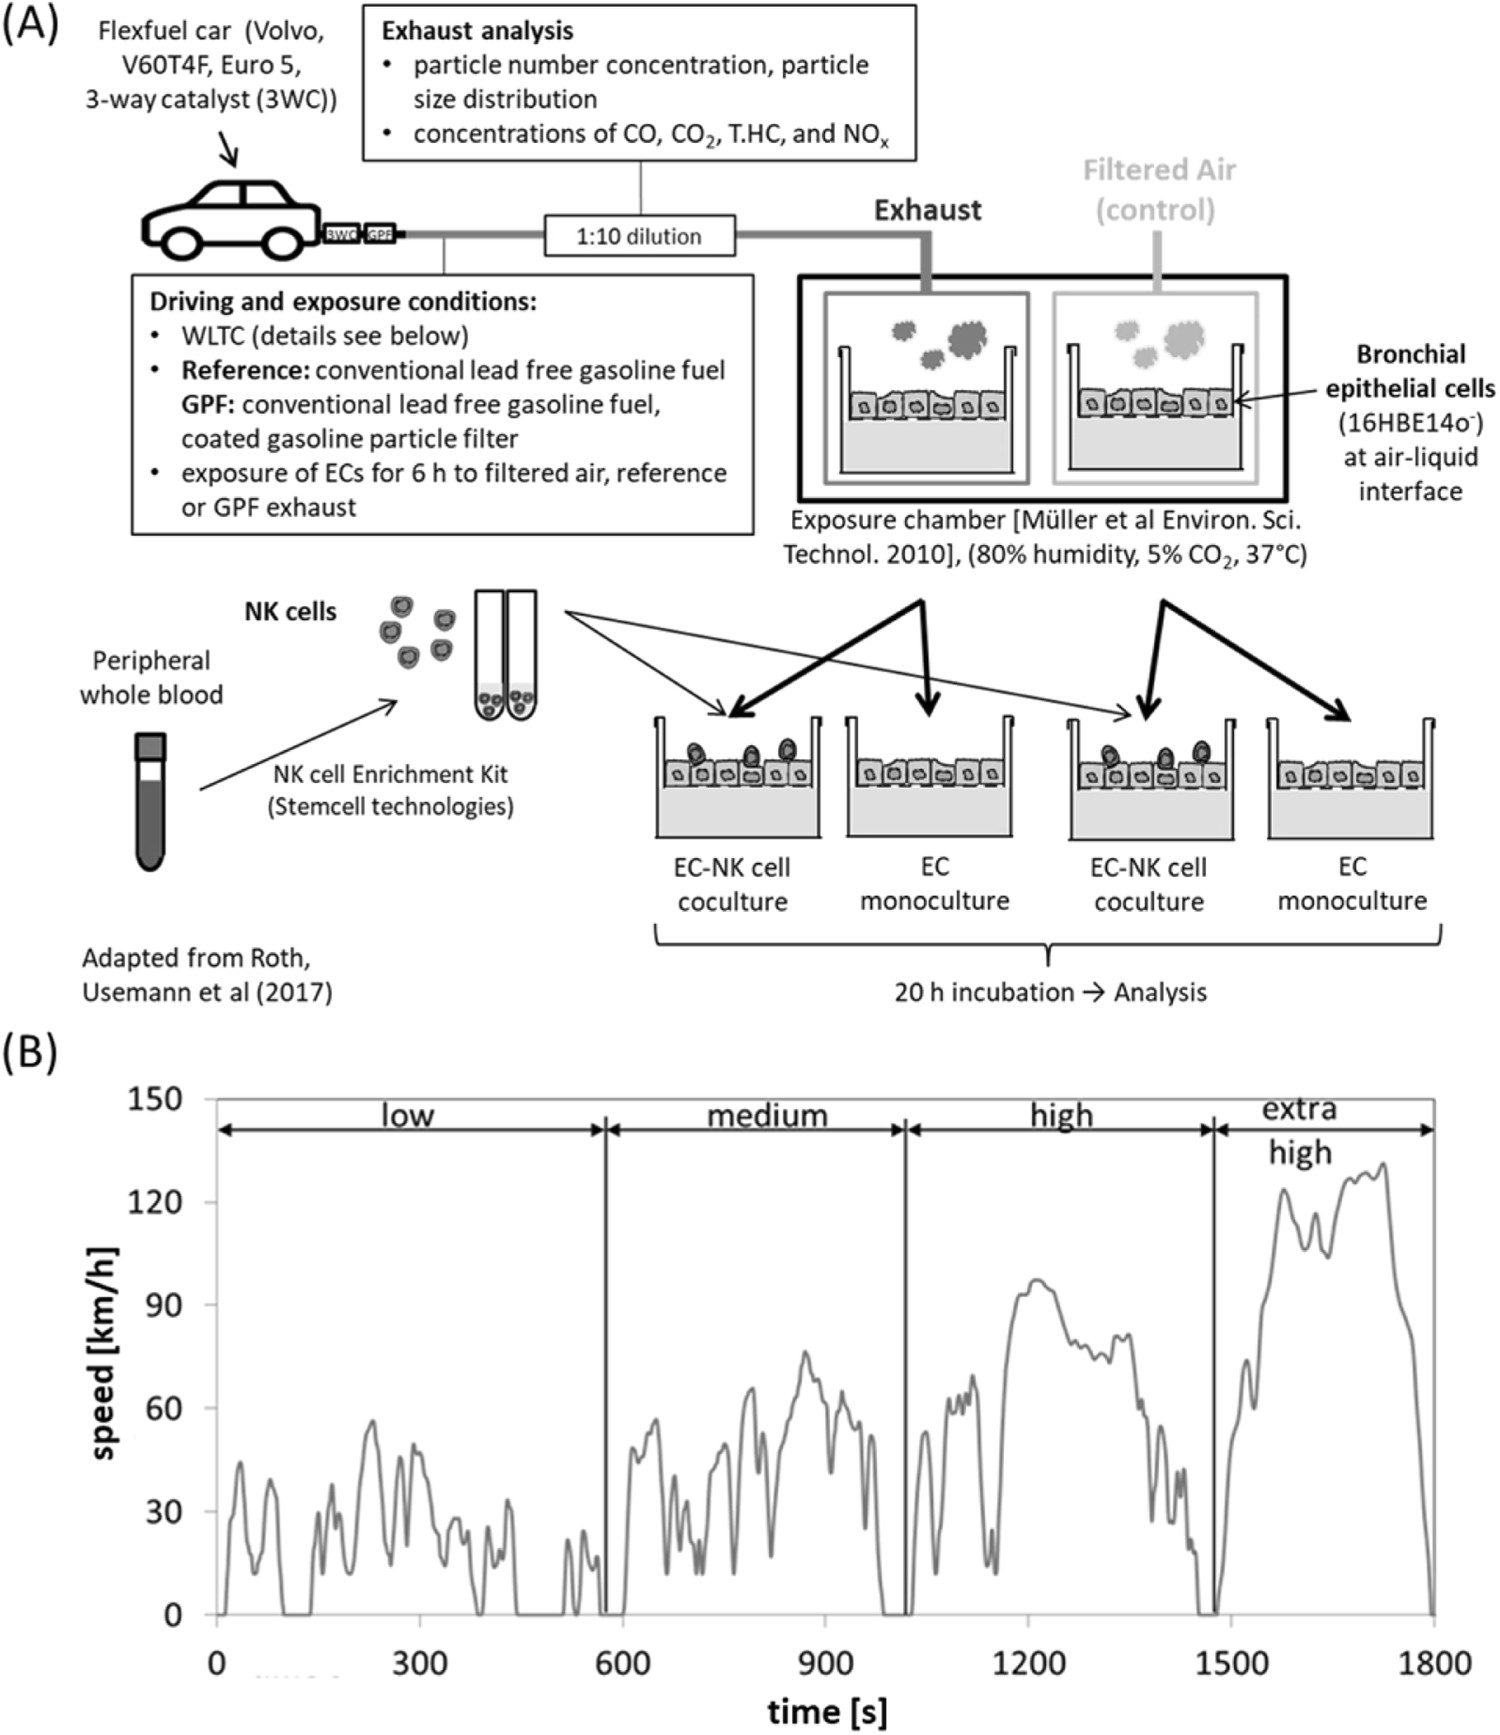 Gasoline Particle Filter Reduces Oxidative Dna Damage In Bronchial Case 530 Engine Diagram Epithelial Cells After Whole Exhaust Exposure Vitro Scientific Reports